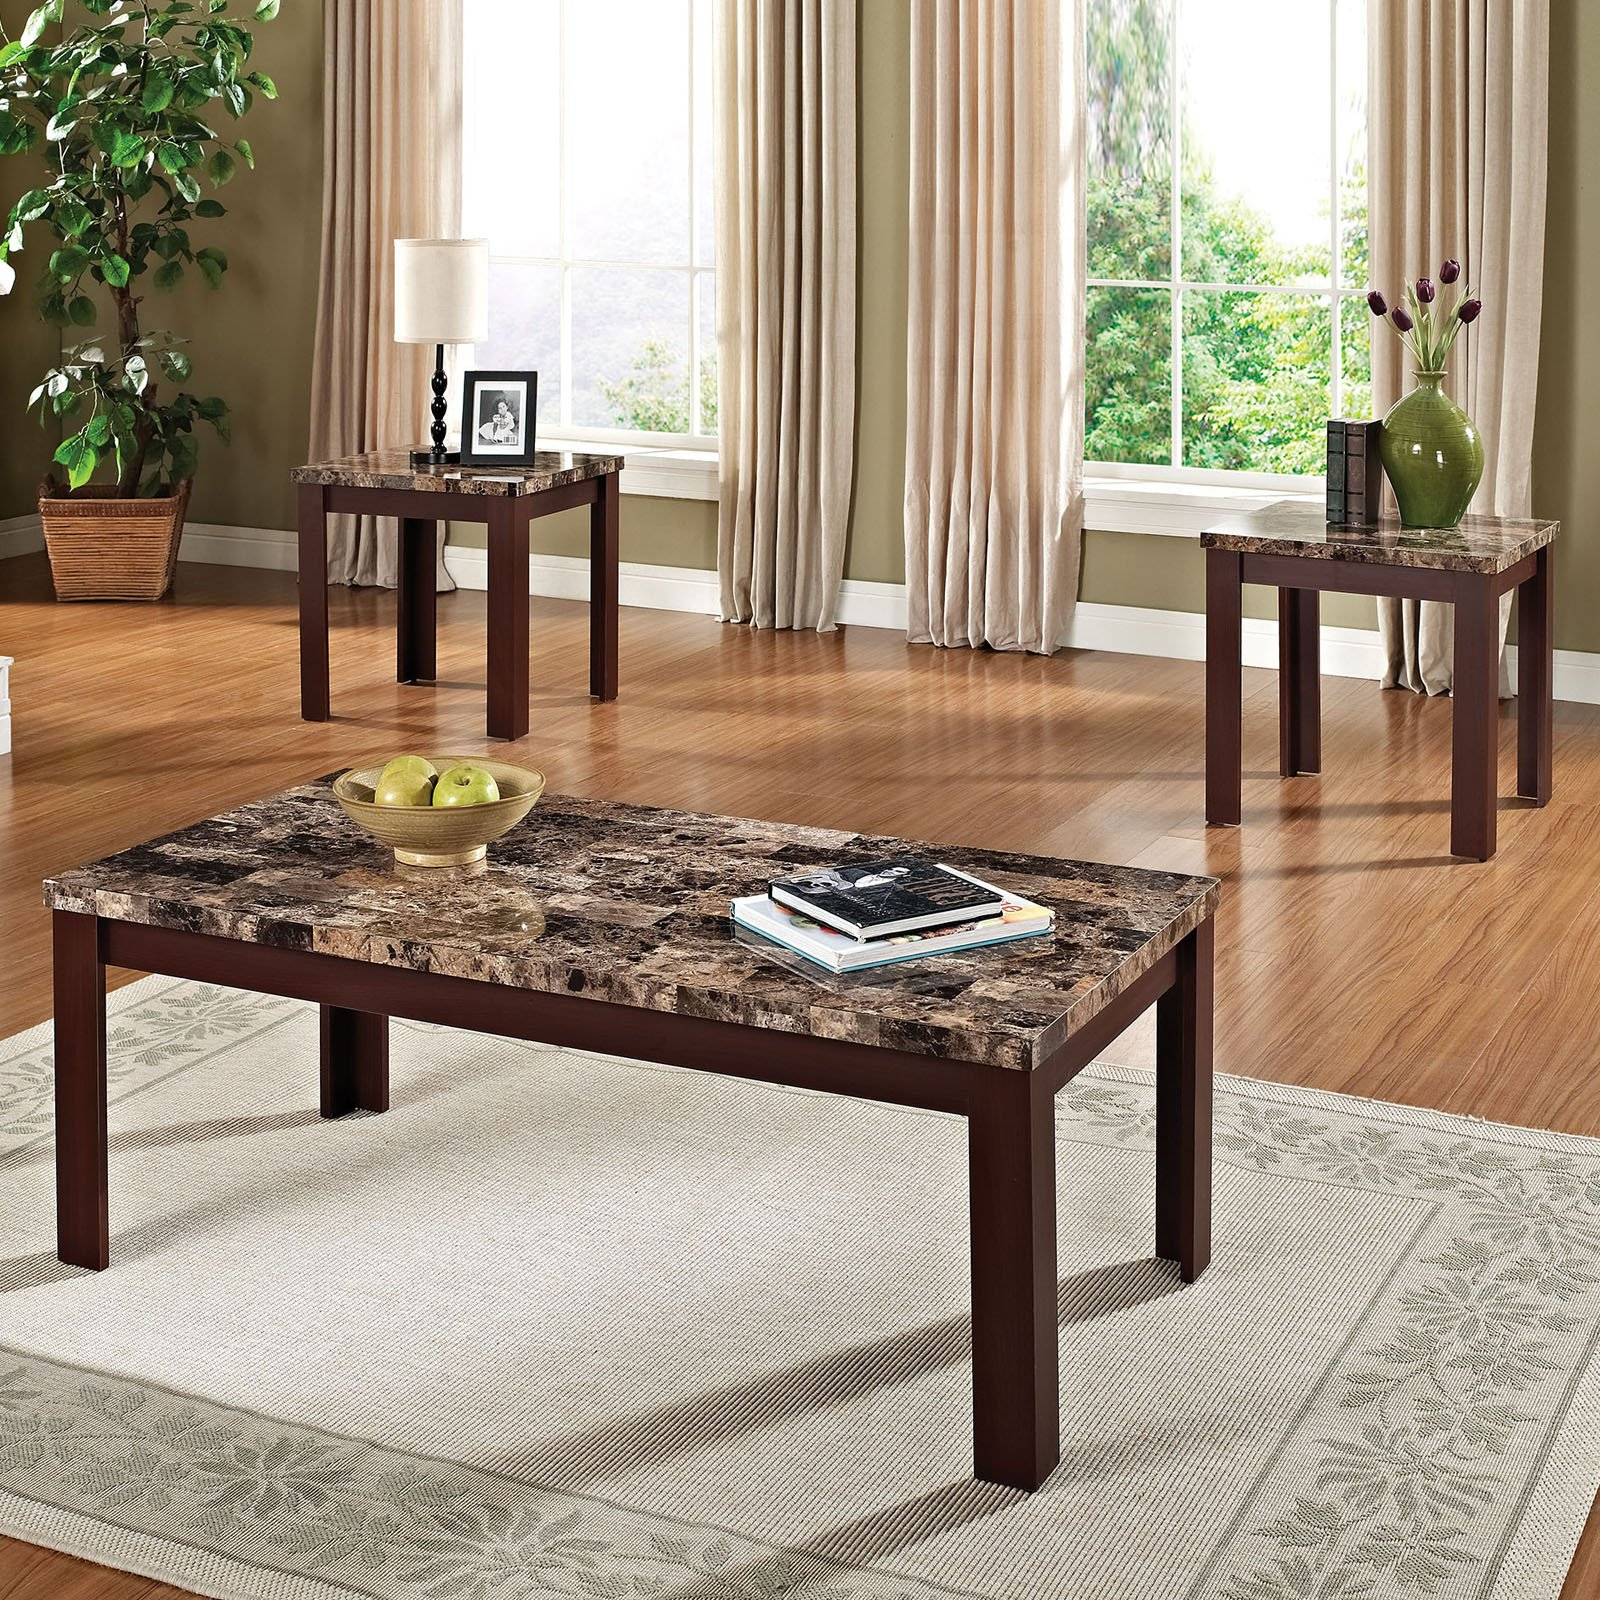 acme piece finely coffee and end table set dark brown faux marble wood accent black collapsible white barn door unusual tables behind the couch lamps target chalk paint circular